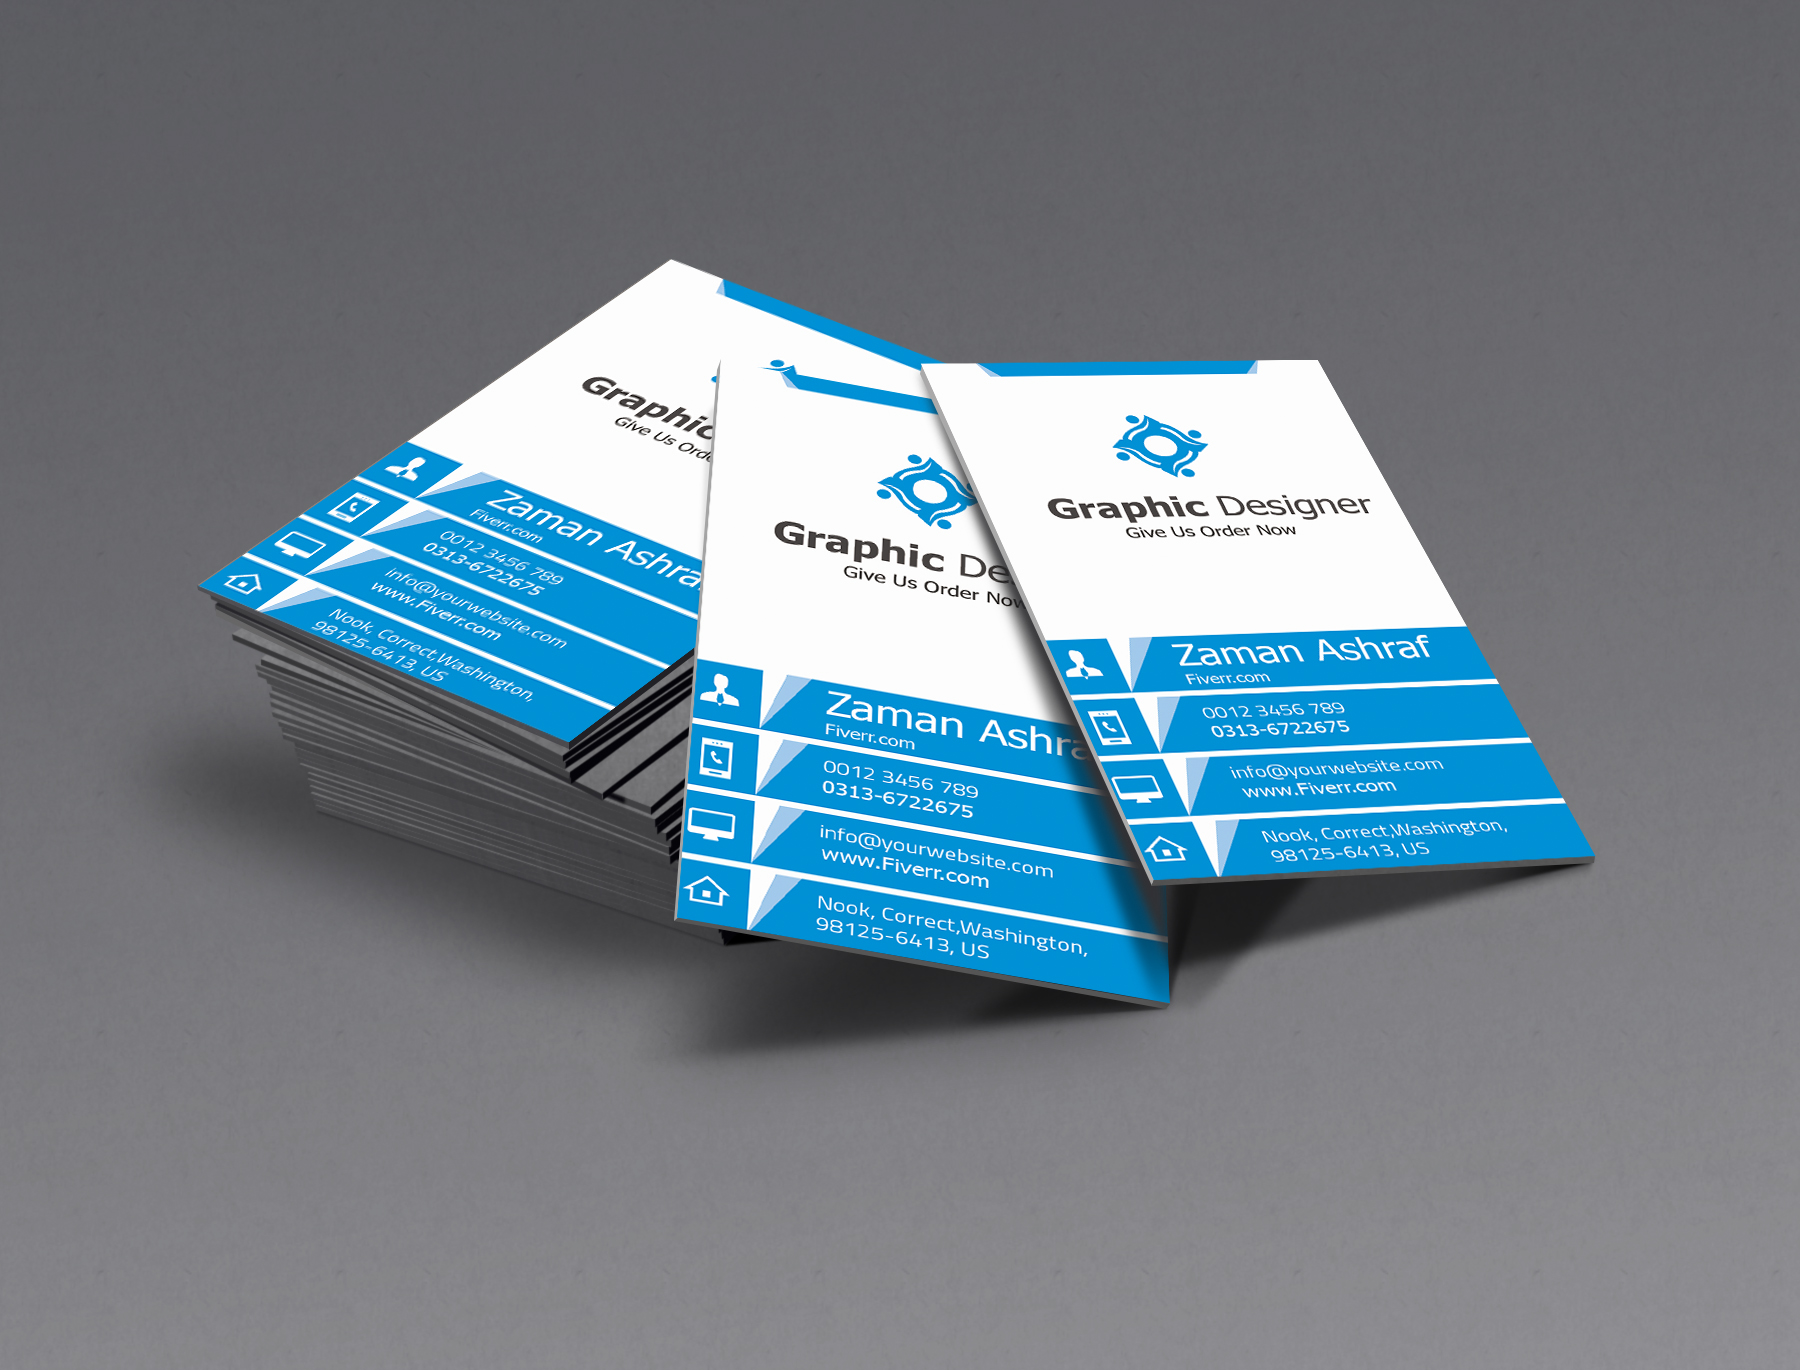 2 professional business card logo free for $5 seoclerks